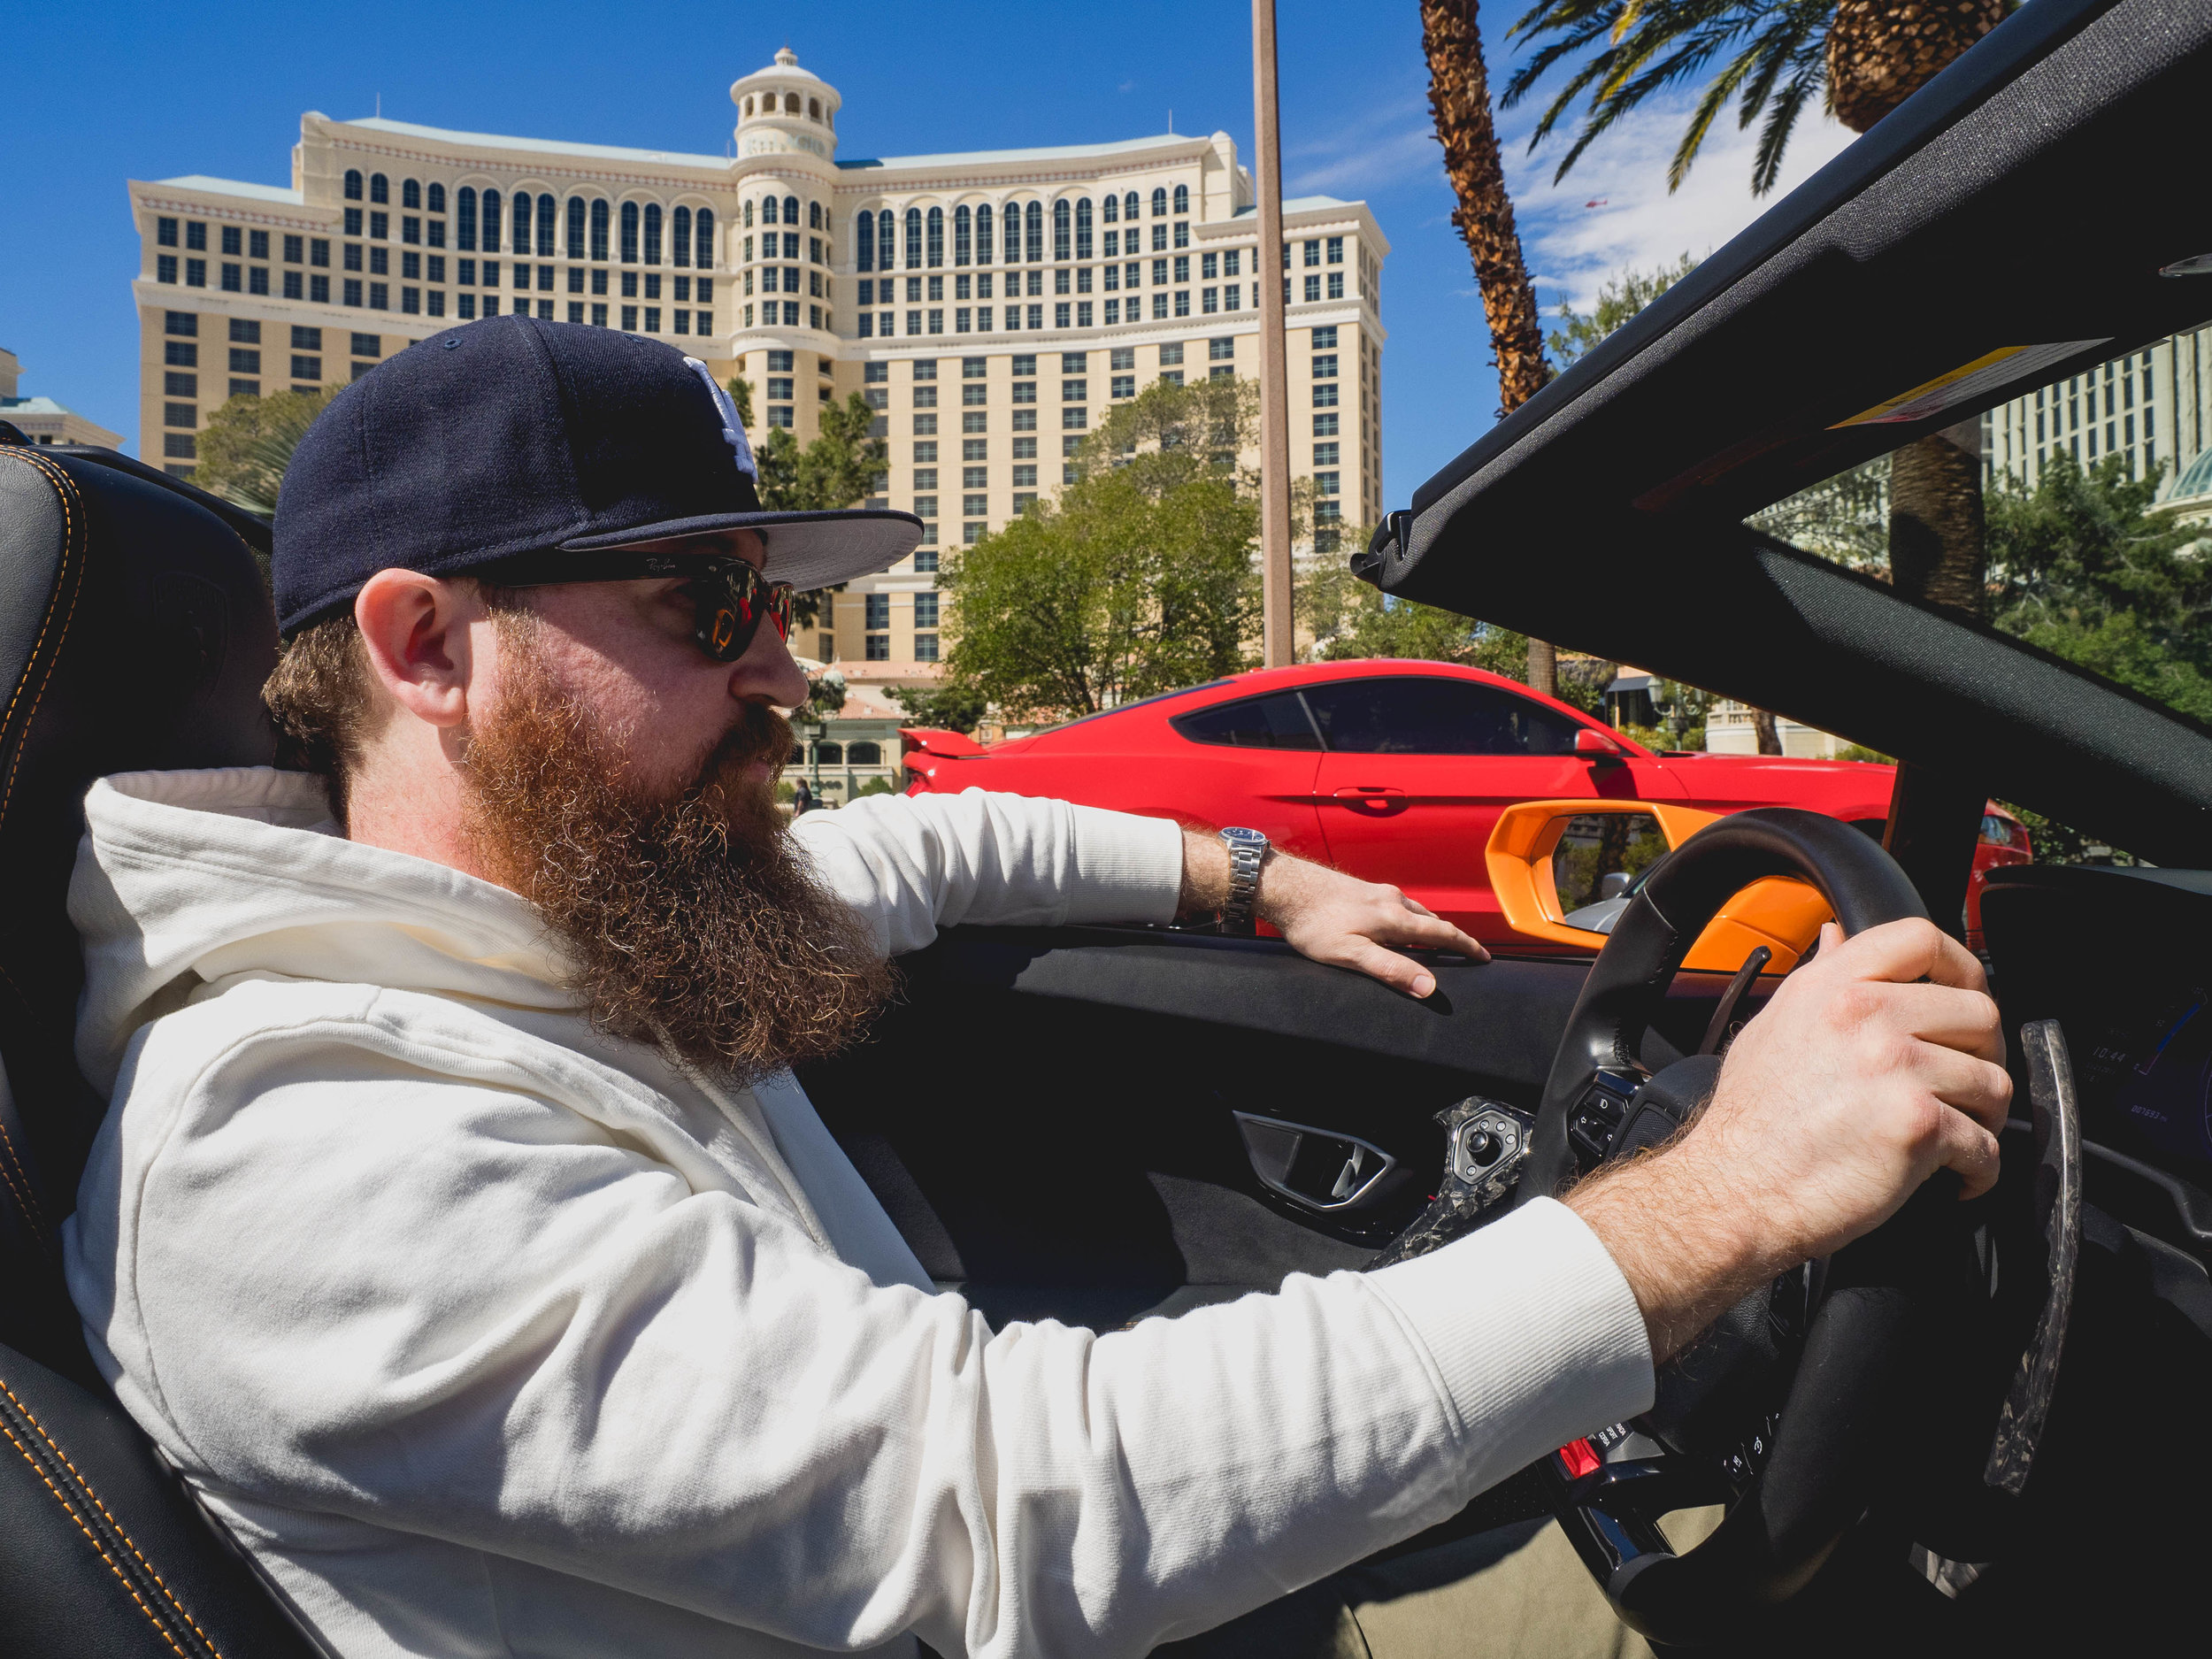 james driving the huracan down the las vegas strip, with  the bellagio  behind him.